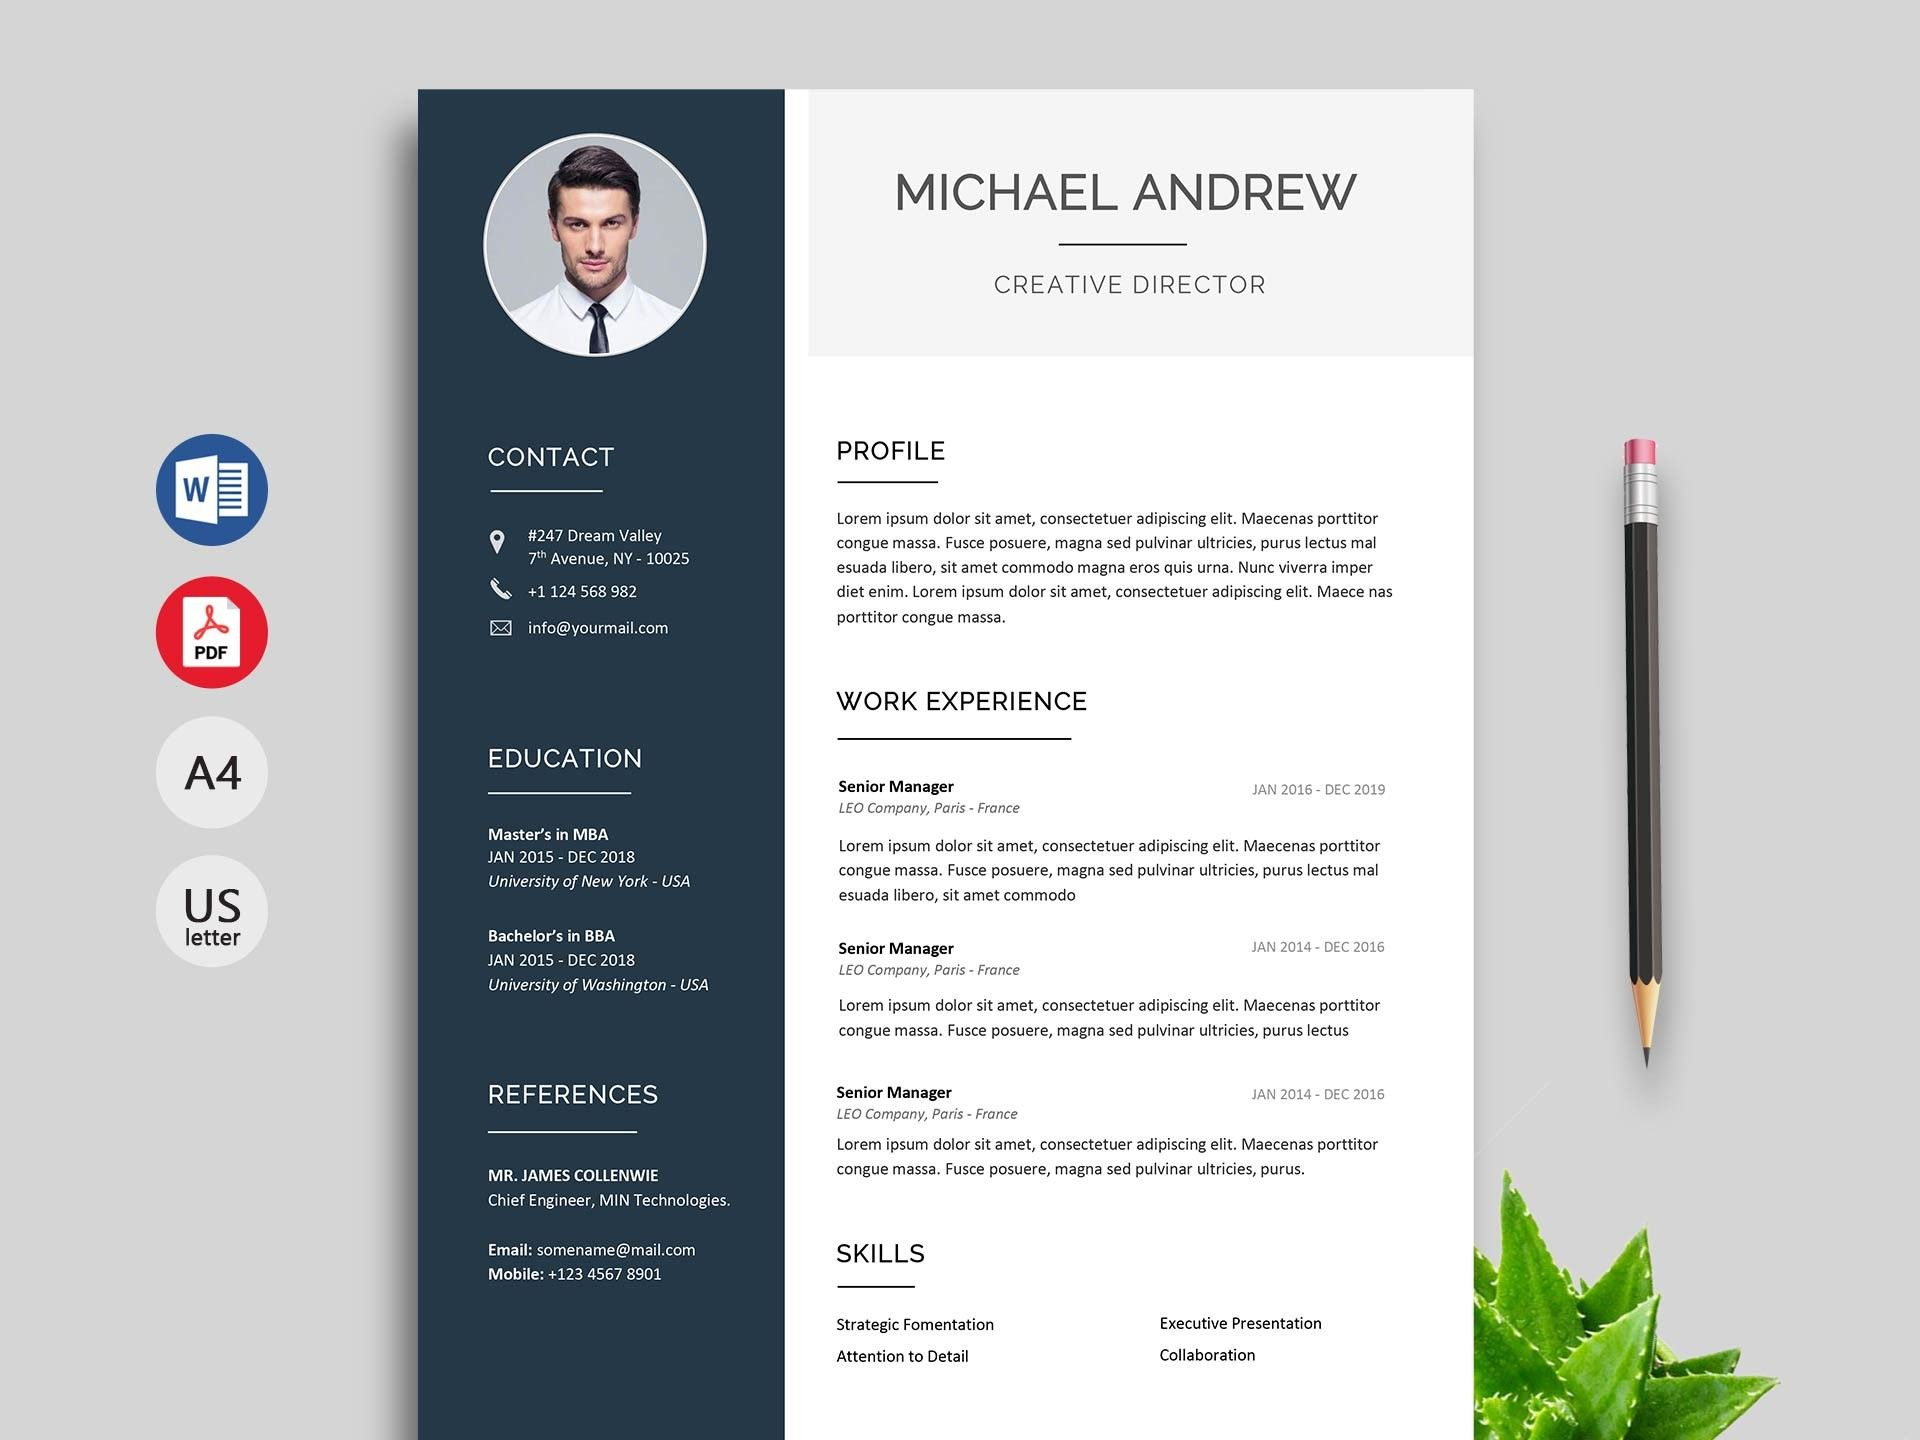 Curriculum vitae 1 template understand the background of